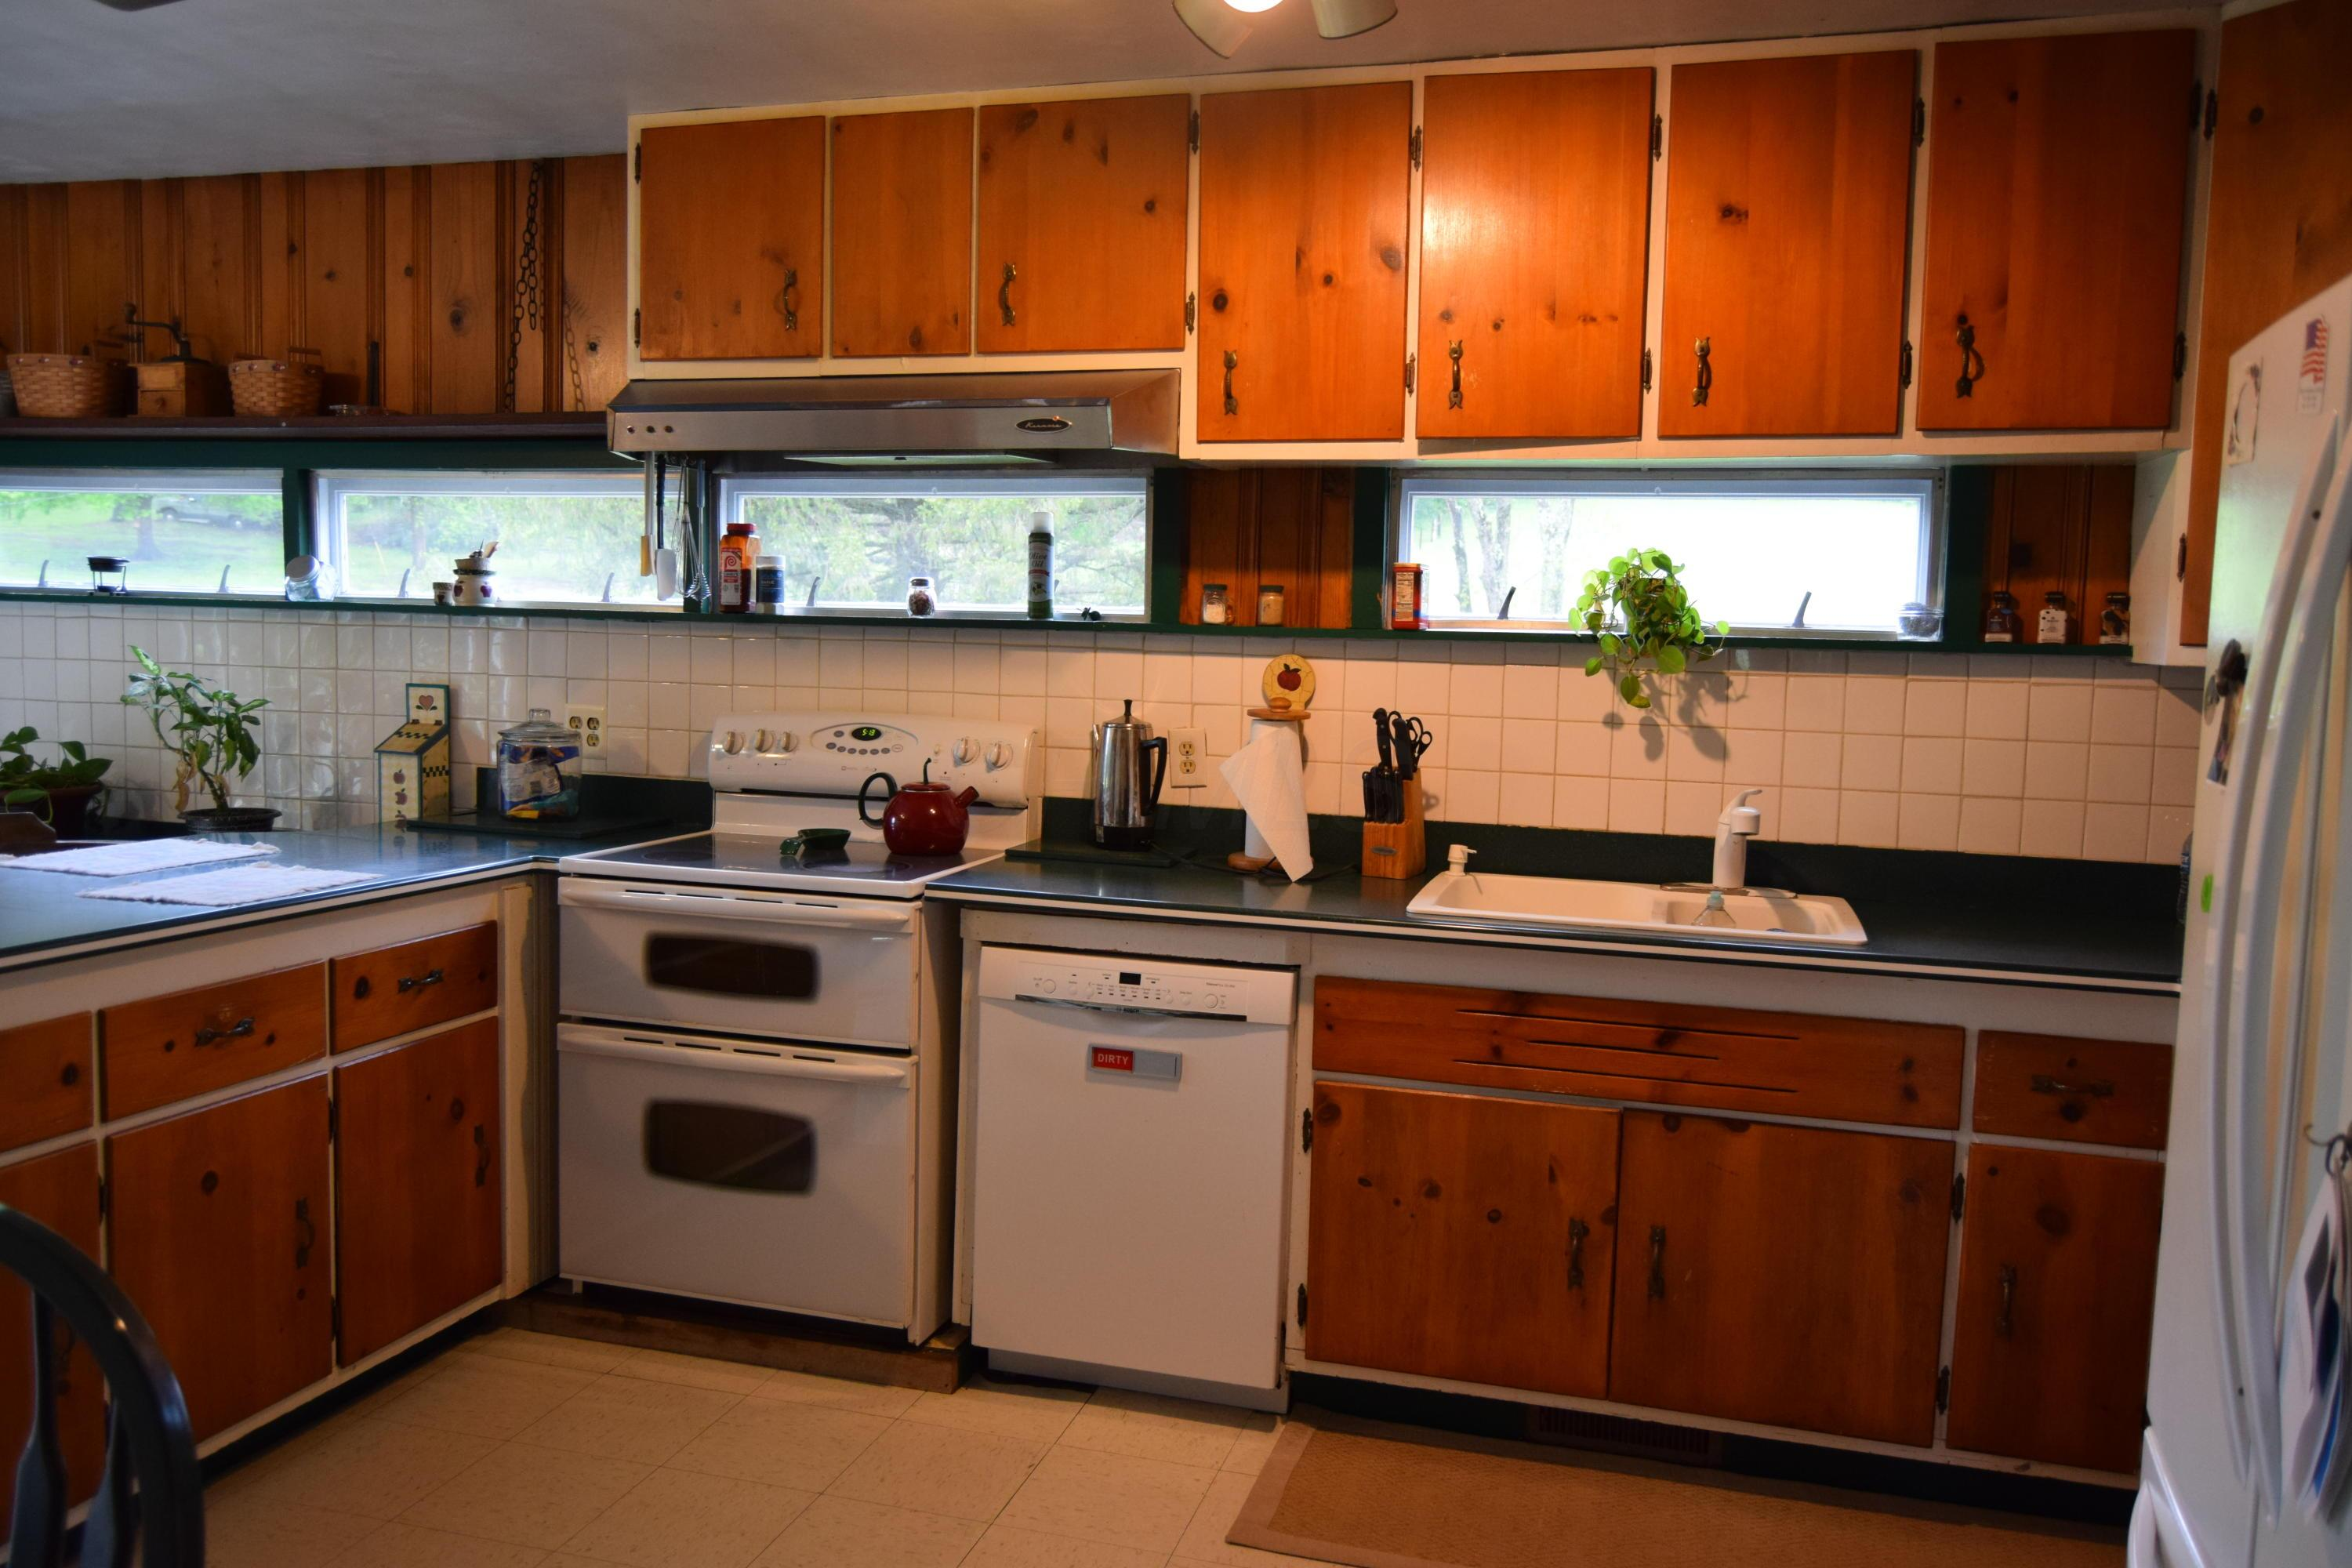 17472 Mary Ann Furnace Road, Nashport, Ohio 43830, 4 Bedrooms Bedrooms, ,2 BathroomsBathrooms,Residential,For Sale,Mary Ann Furnace,220016359